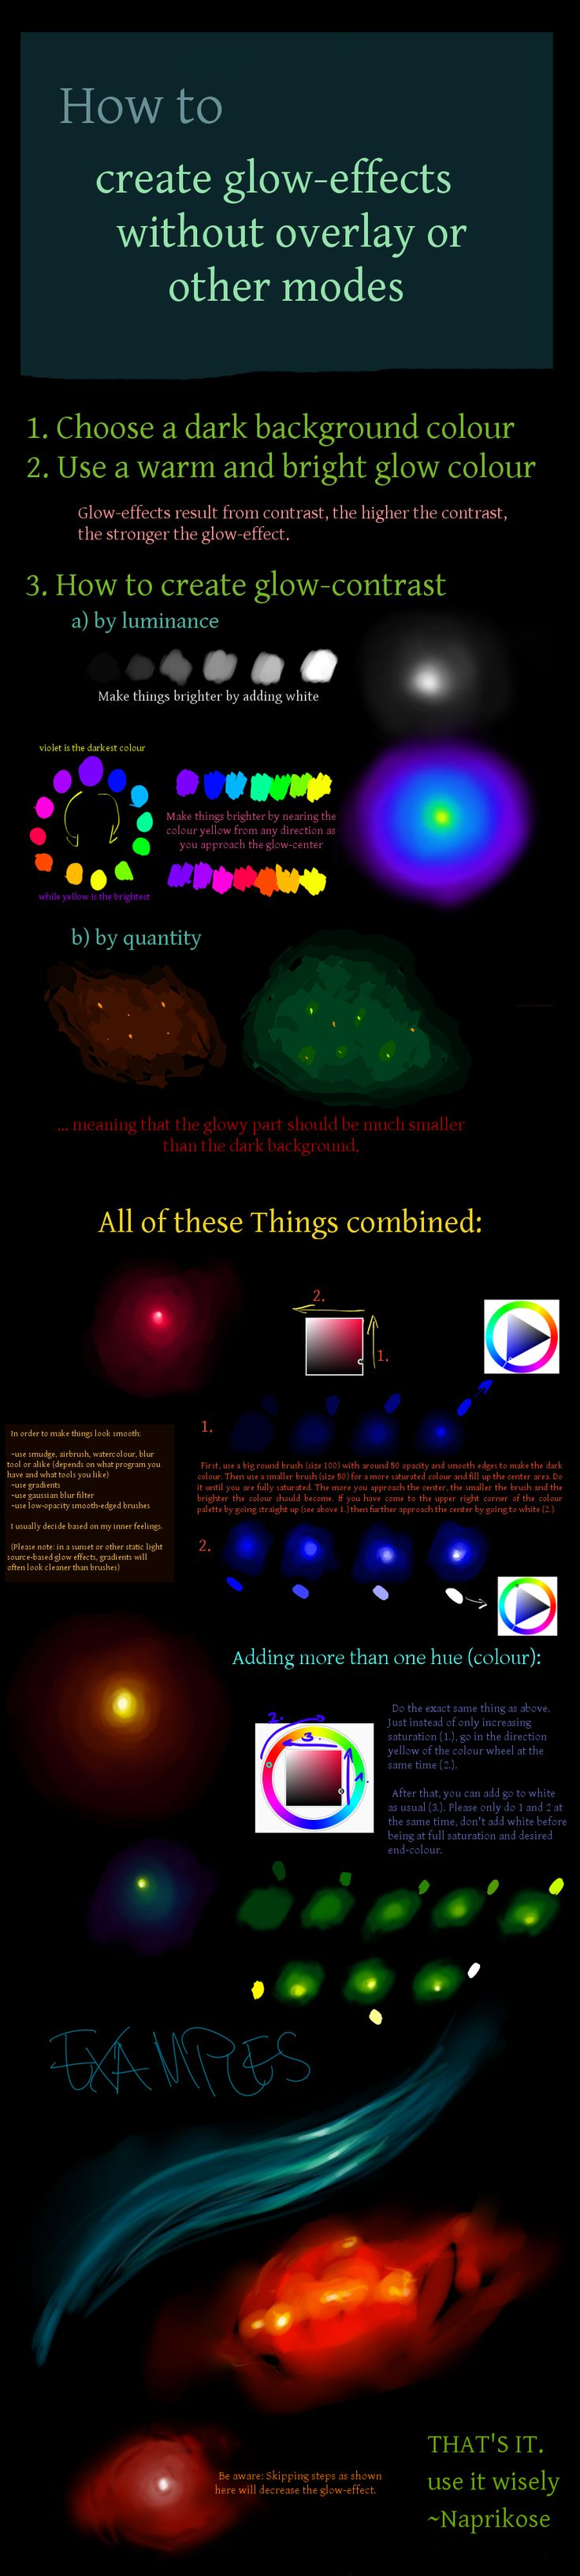 How to create glow effects